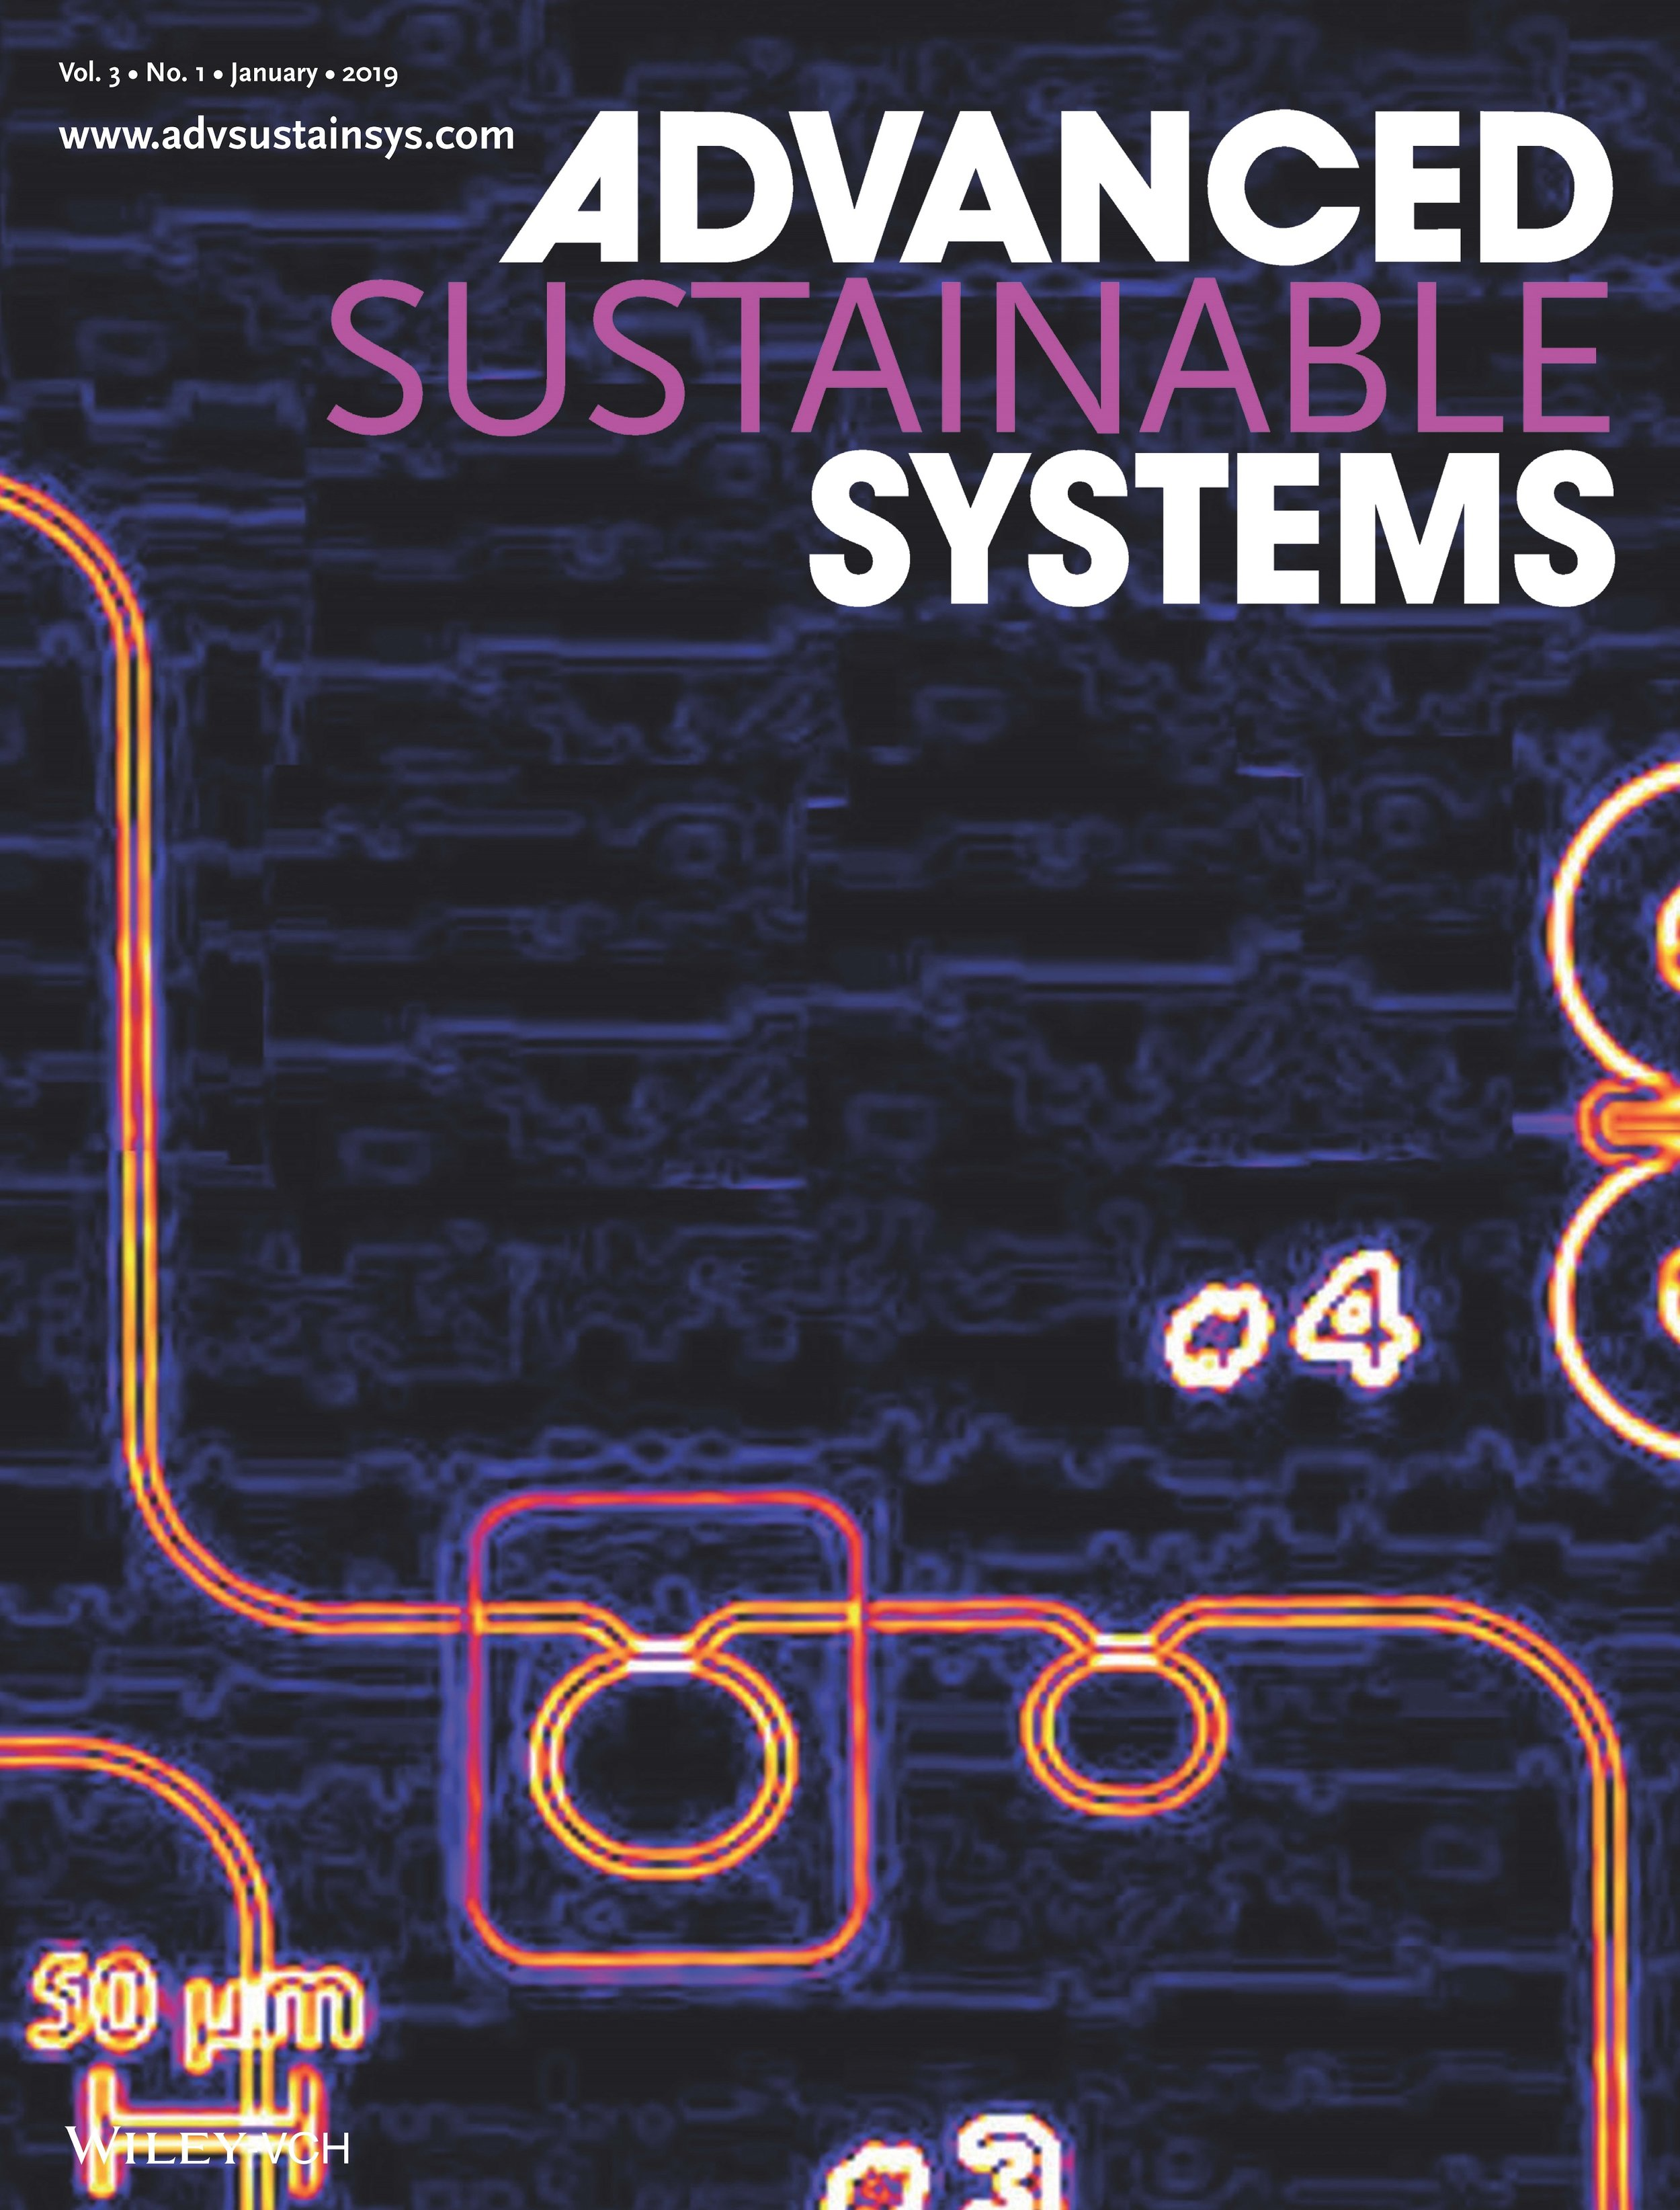 Chen_et_al-2019-Advanced_Sustainable_Systems (small).jpg